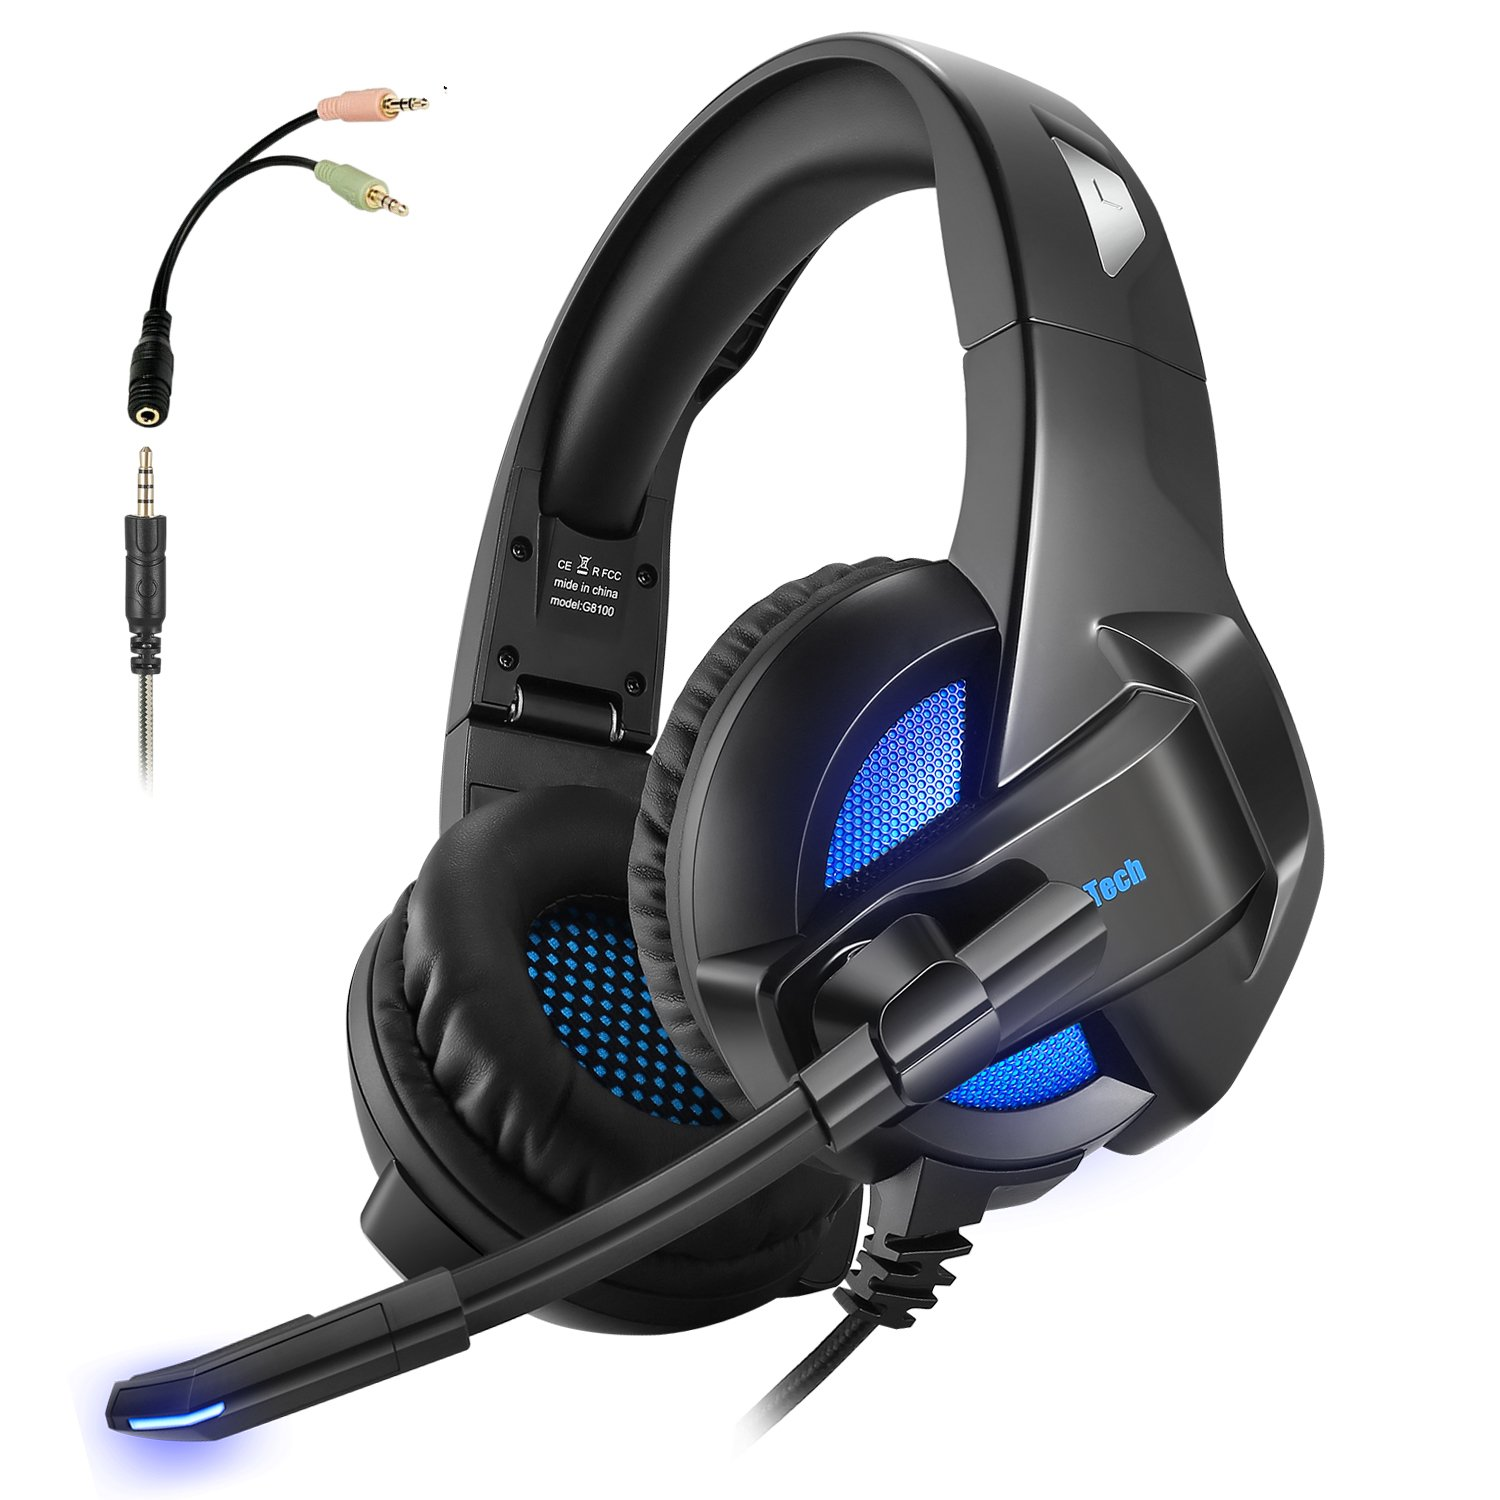 Gaming Headset Foldable for Xbox One PS4 ARKARTECH Headphones with Mic  Noise Cancelling Over Ear LED Light Bass Stereo Sound Volume Control for PC af3973fde3